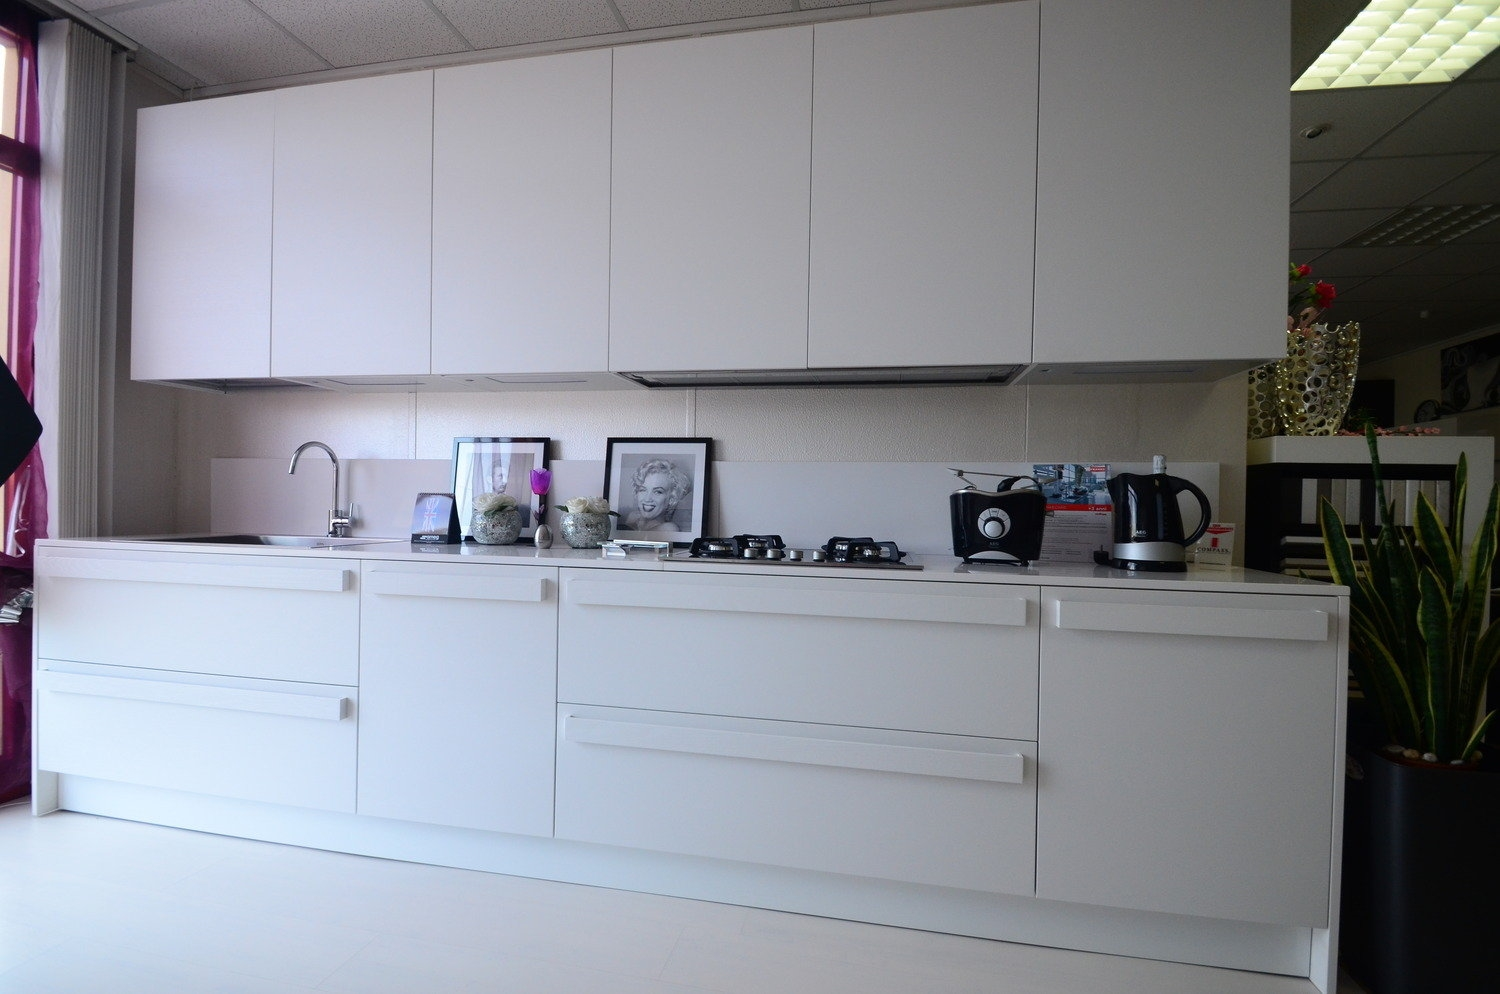 www.outletarredamento.it/img/cucine/cucina-complet...